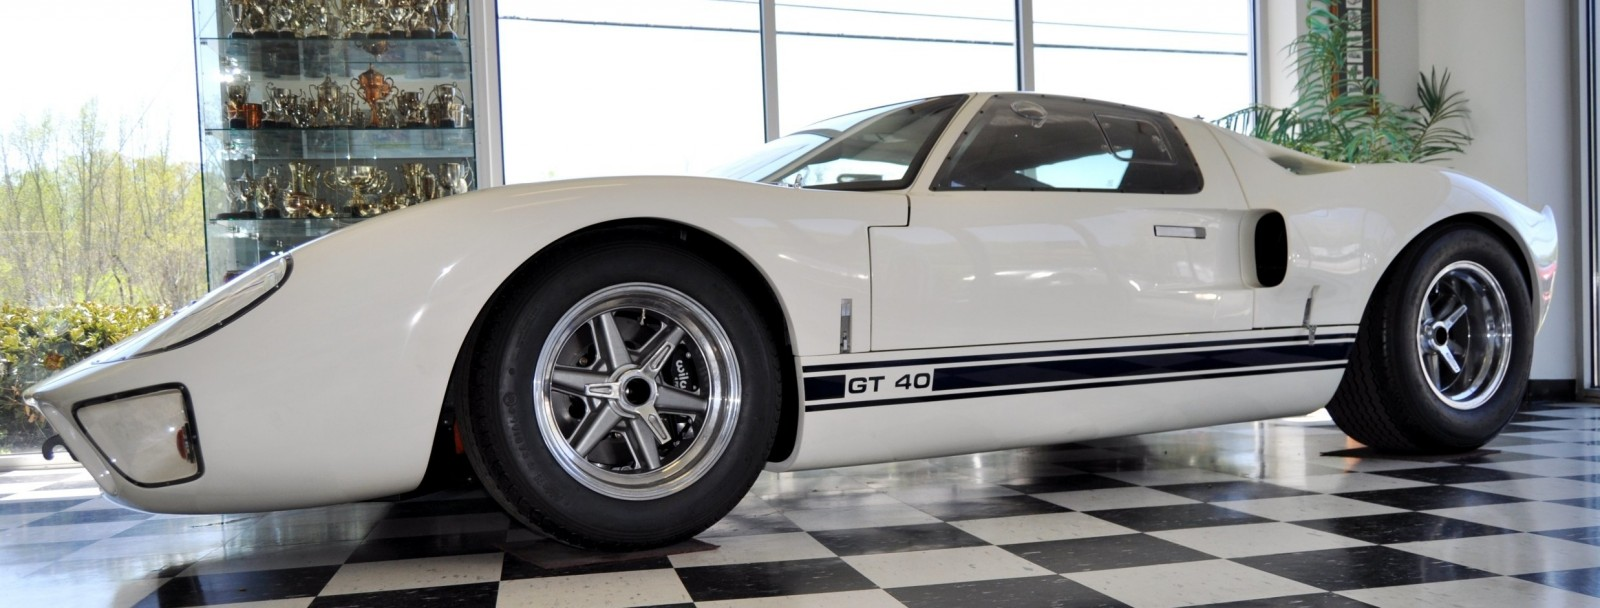 Touring the Olthoff Racing Dream Factory - Superformance GT40s and Cobras Galore 45